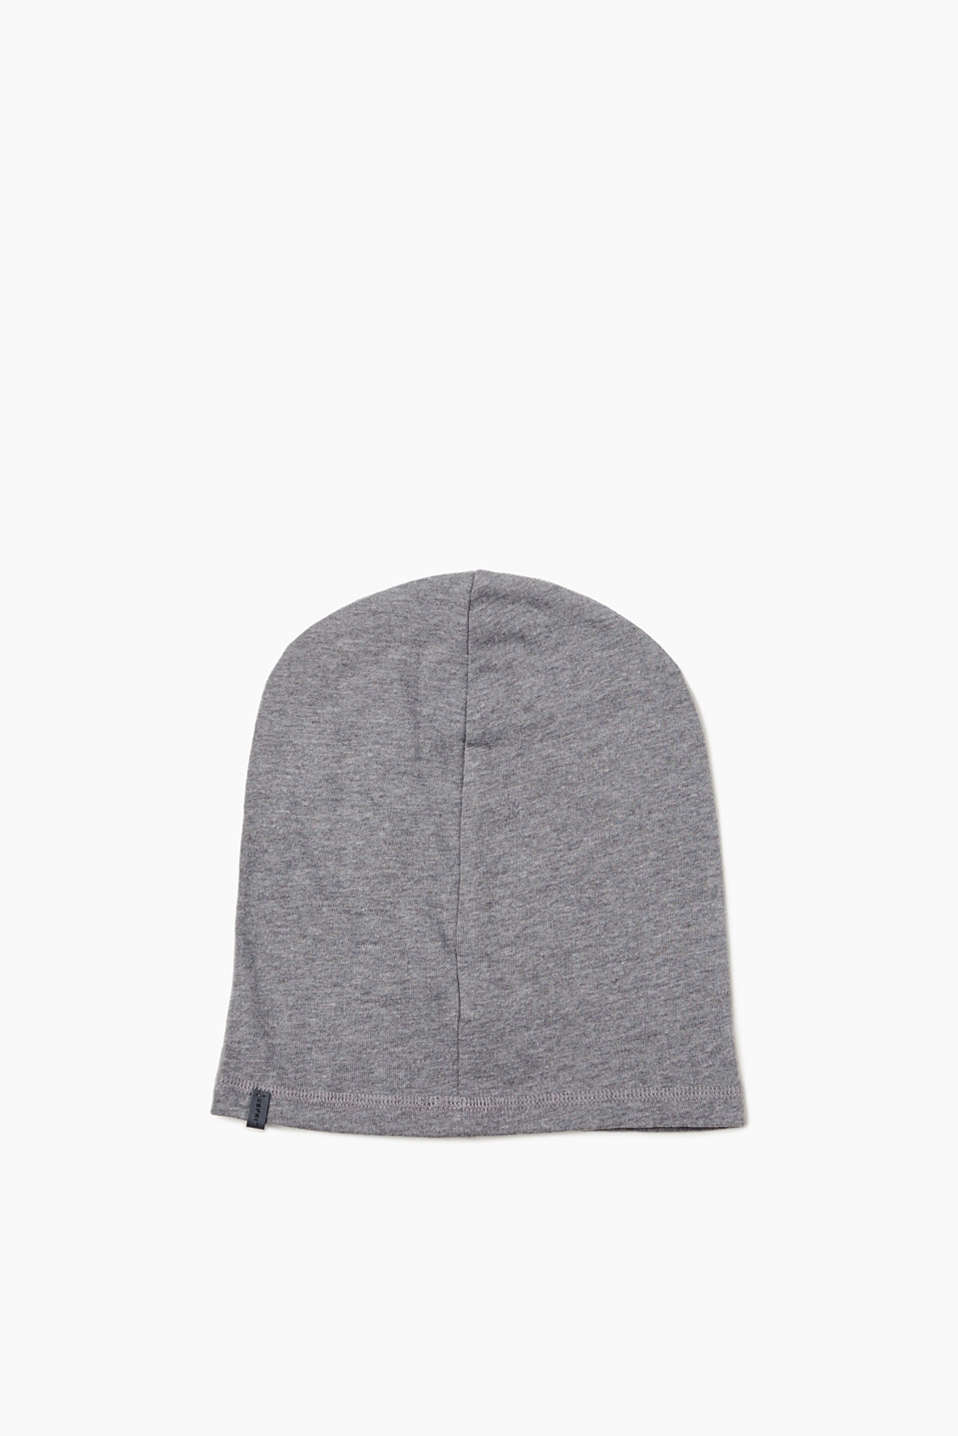 An urban basic! This soft jersey beanie will become a favourite for casual wear